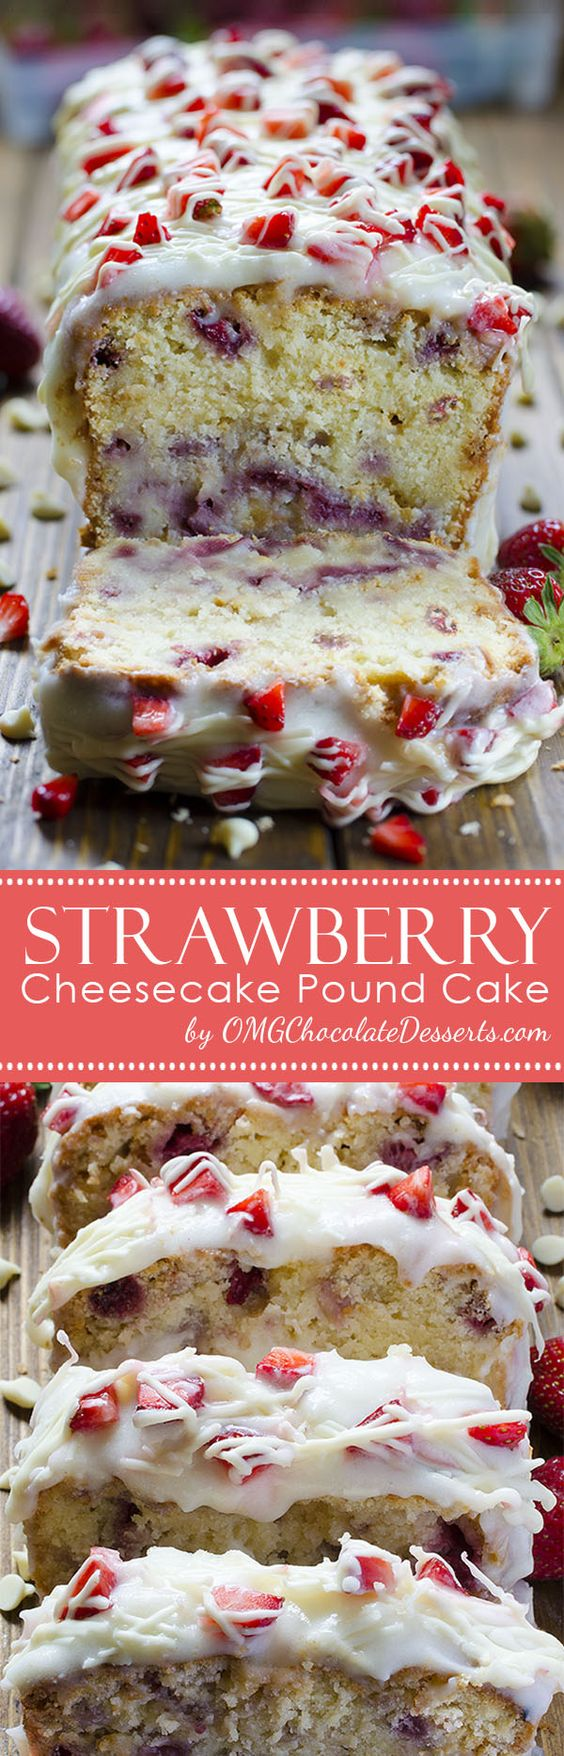 Strawberry Cheesecake Pound Cake Recipe via OMG Chocolate Desserts - Start your spring dessert season with fresh strawberry and delicious pound cake